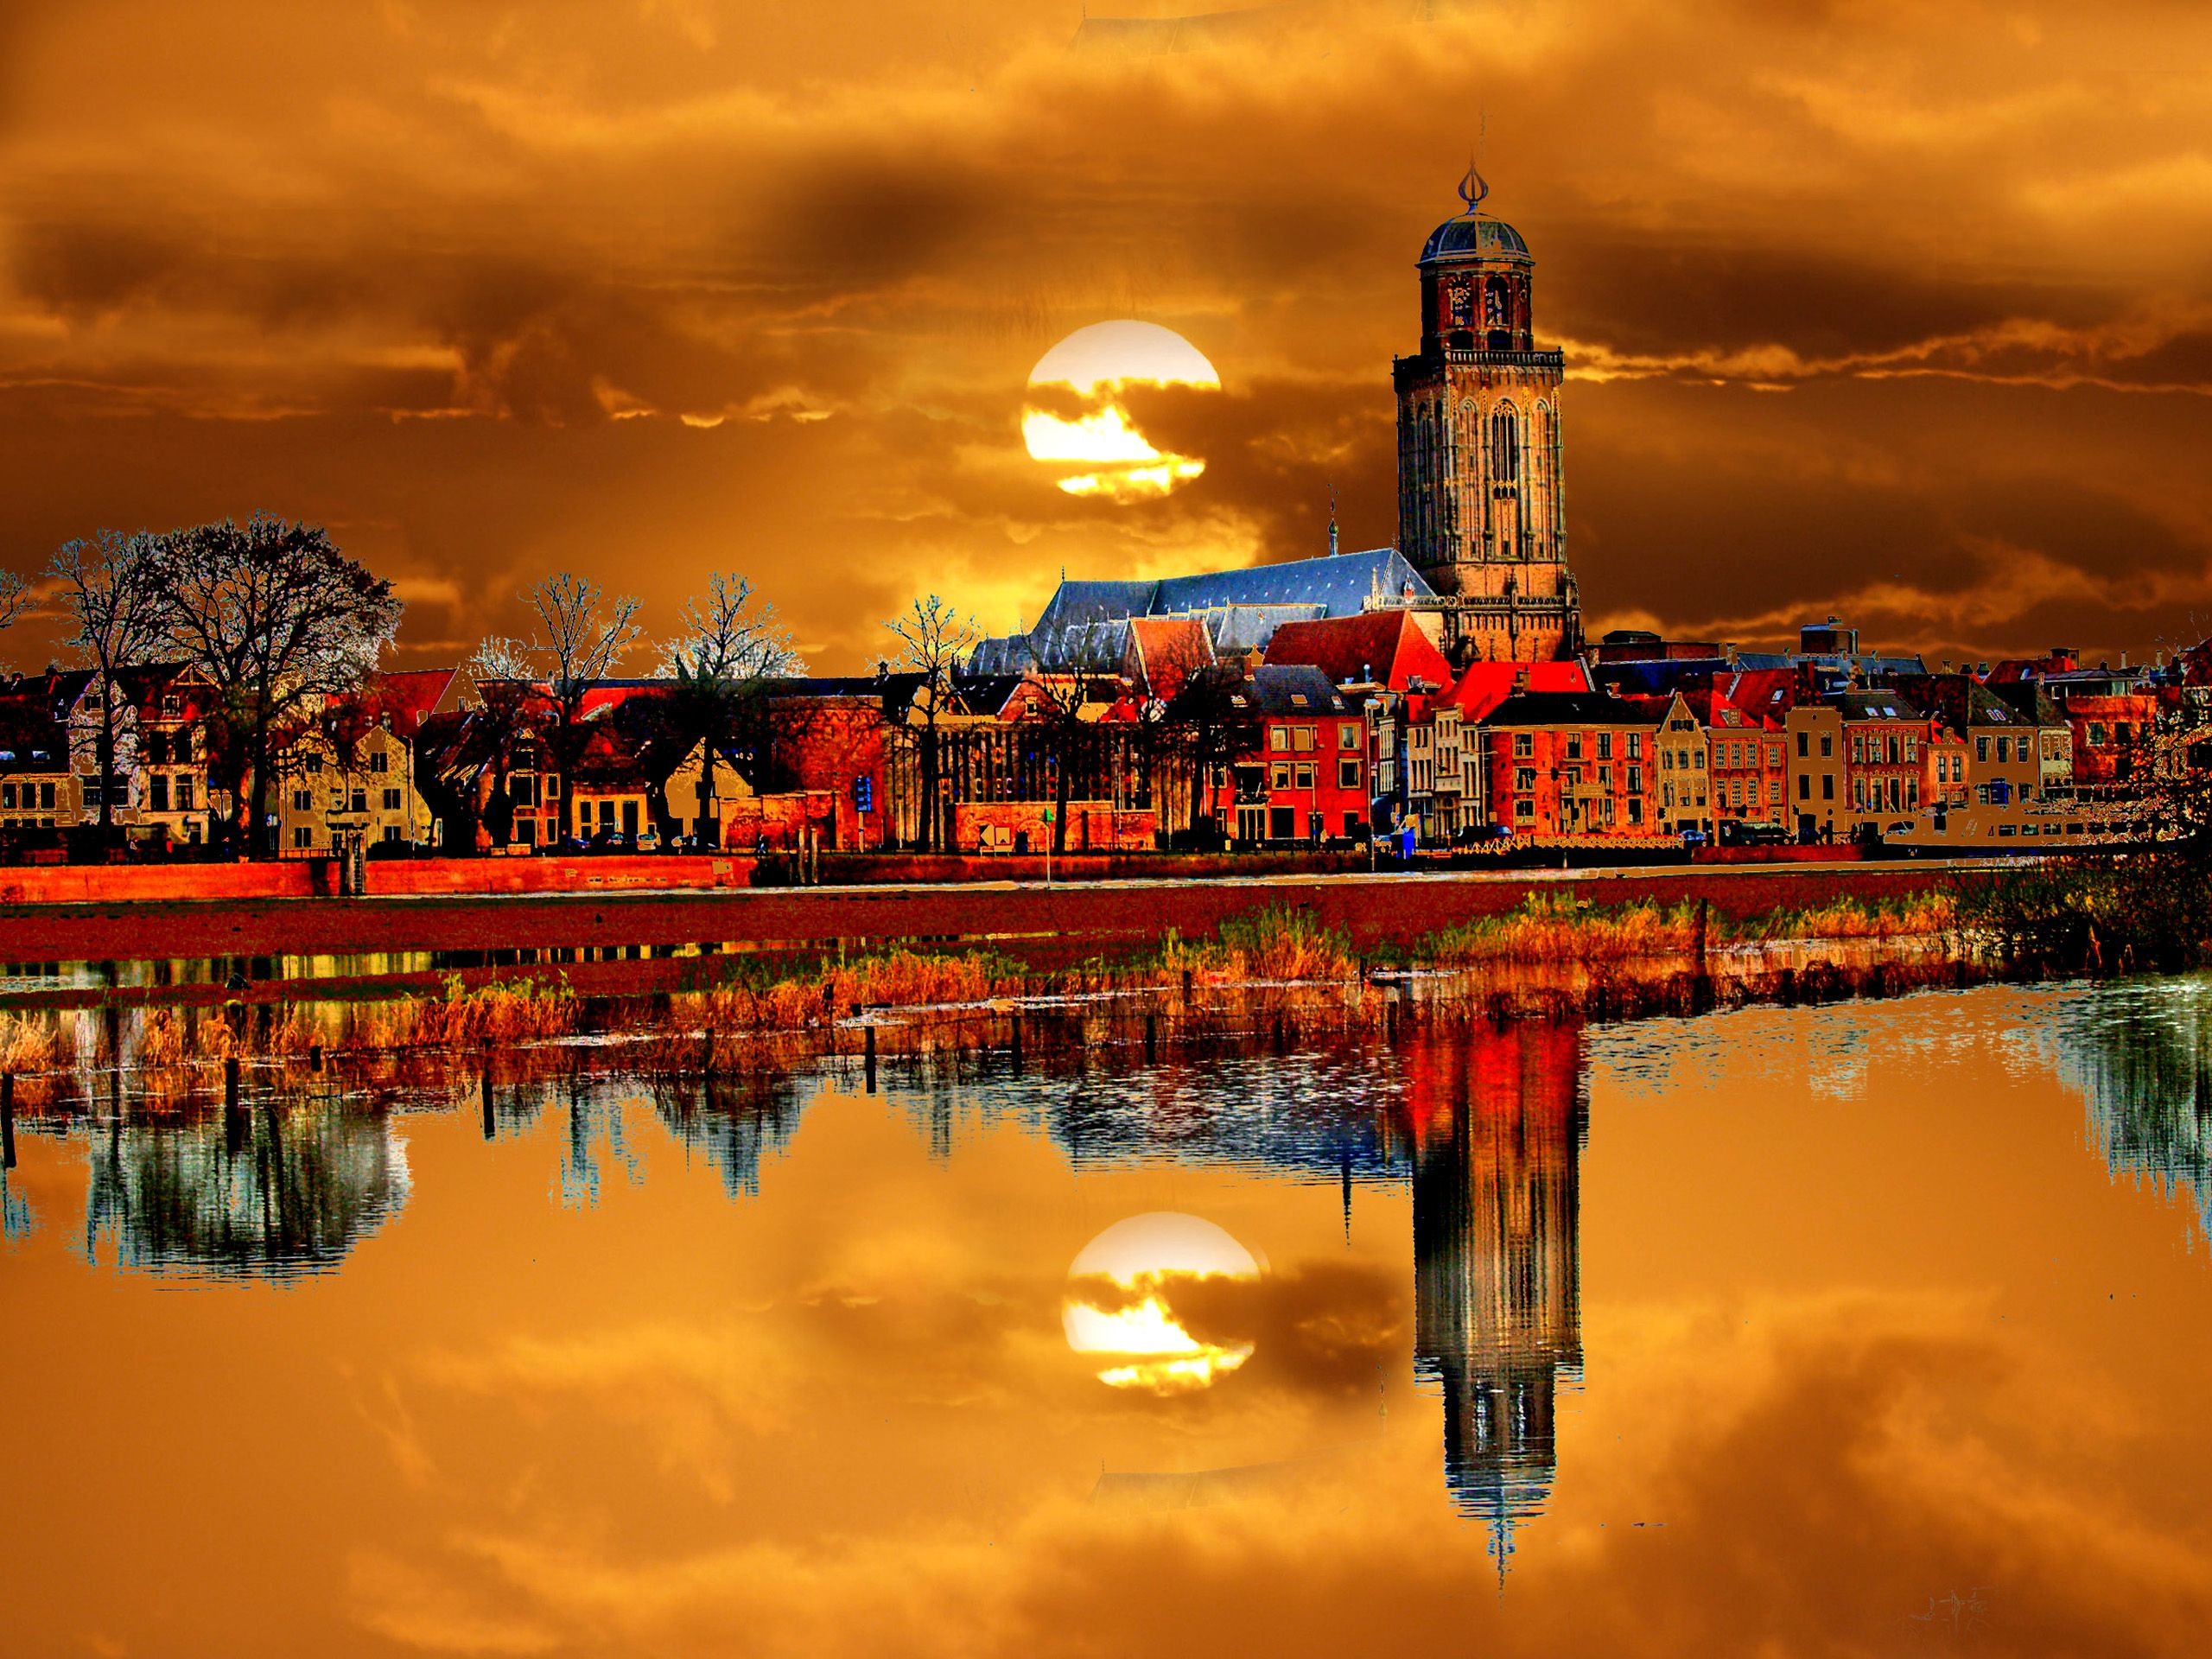 City Reflection in the Netherlands 1573.88 Kb